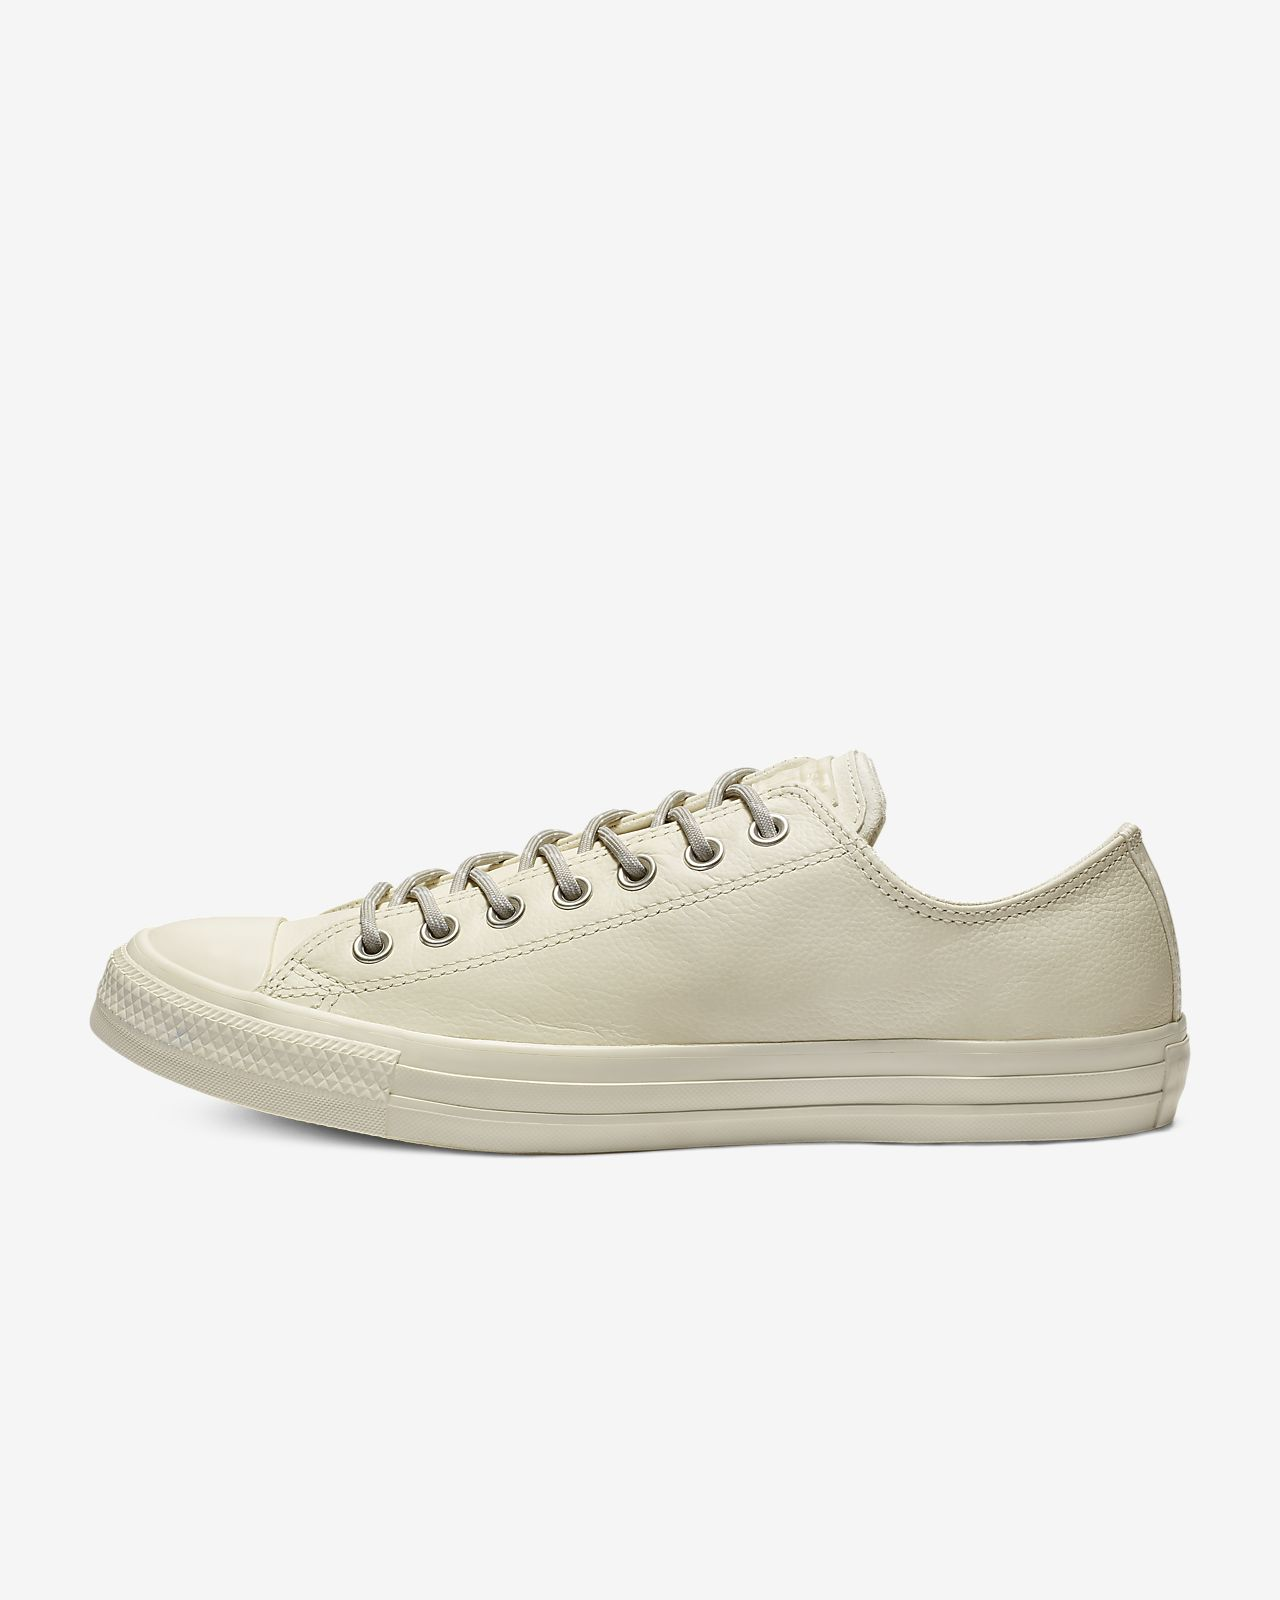 Converse Chuck Taylor All Star Seasonal Leather Low Top Unisex Shoe